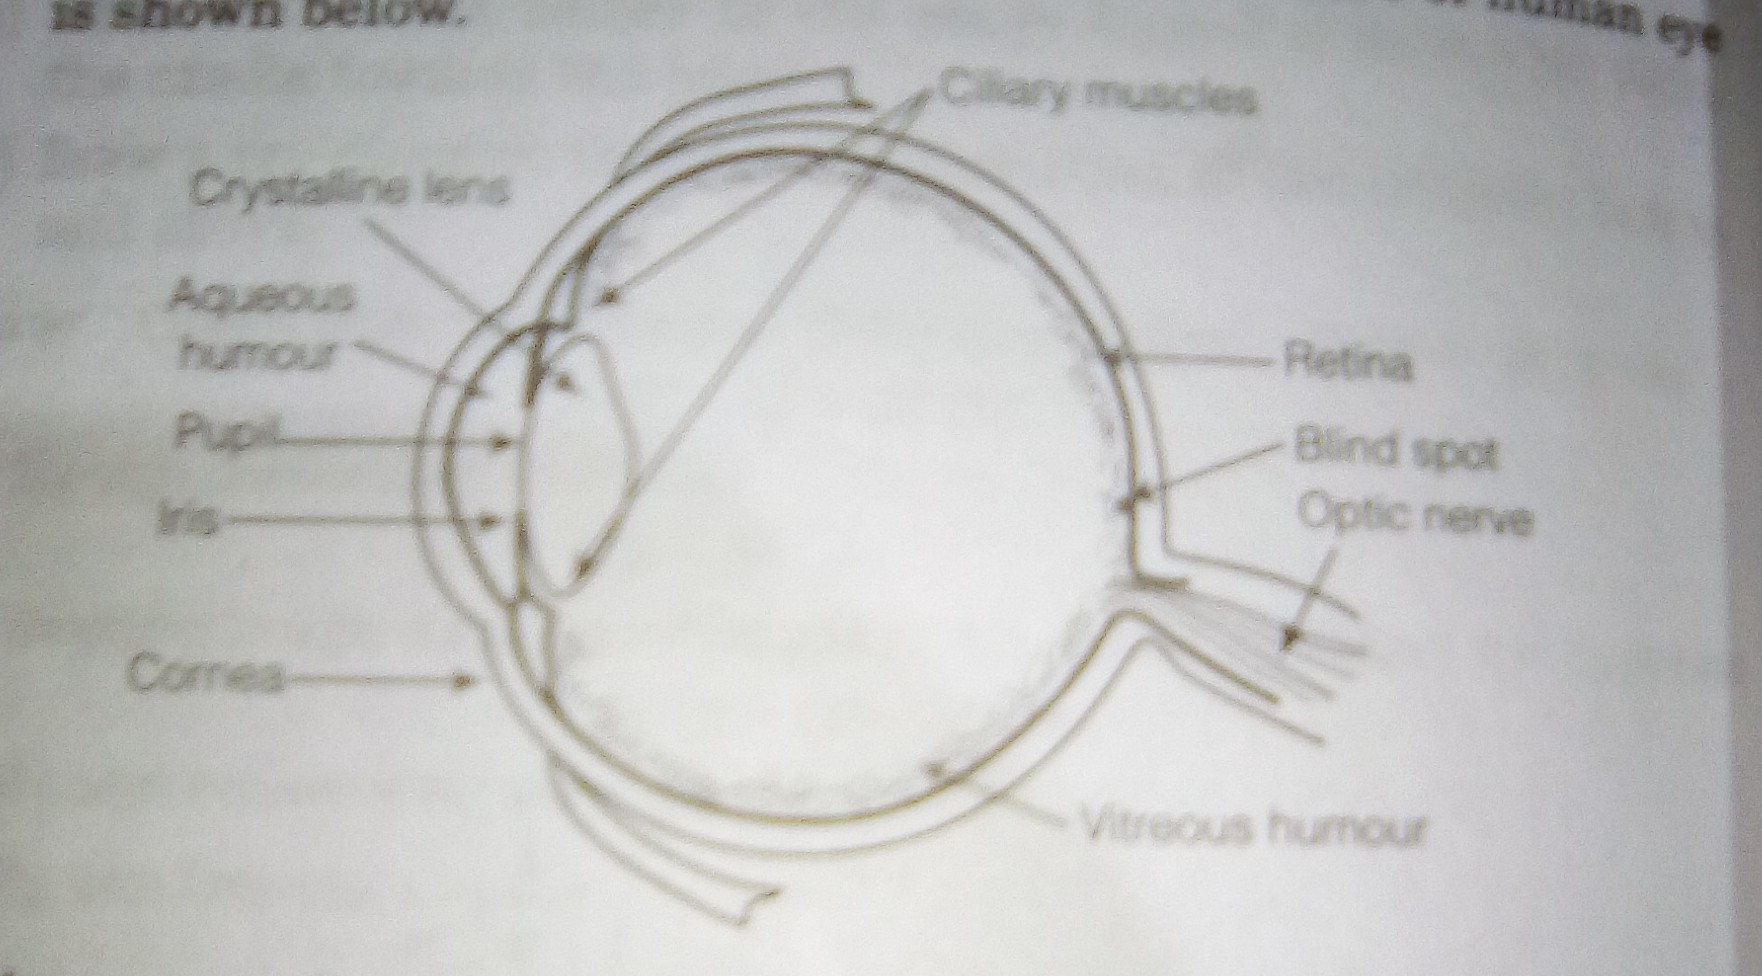 Explain The Structure Of Human Eye With Diagram Image Download